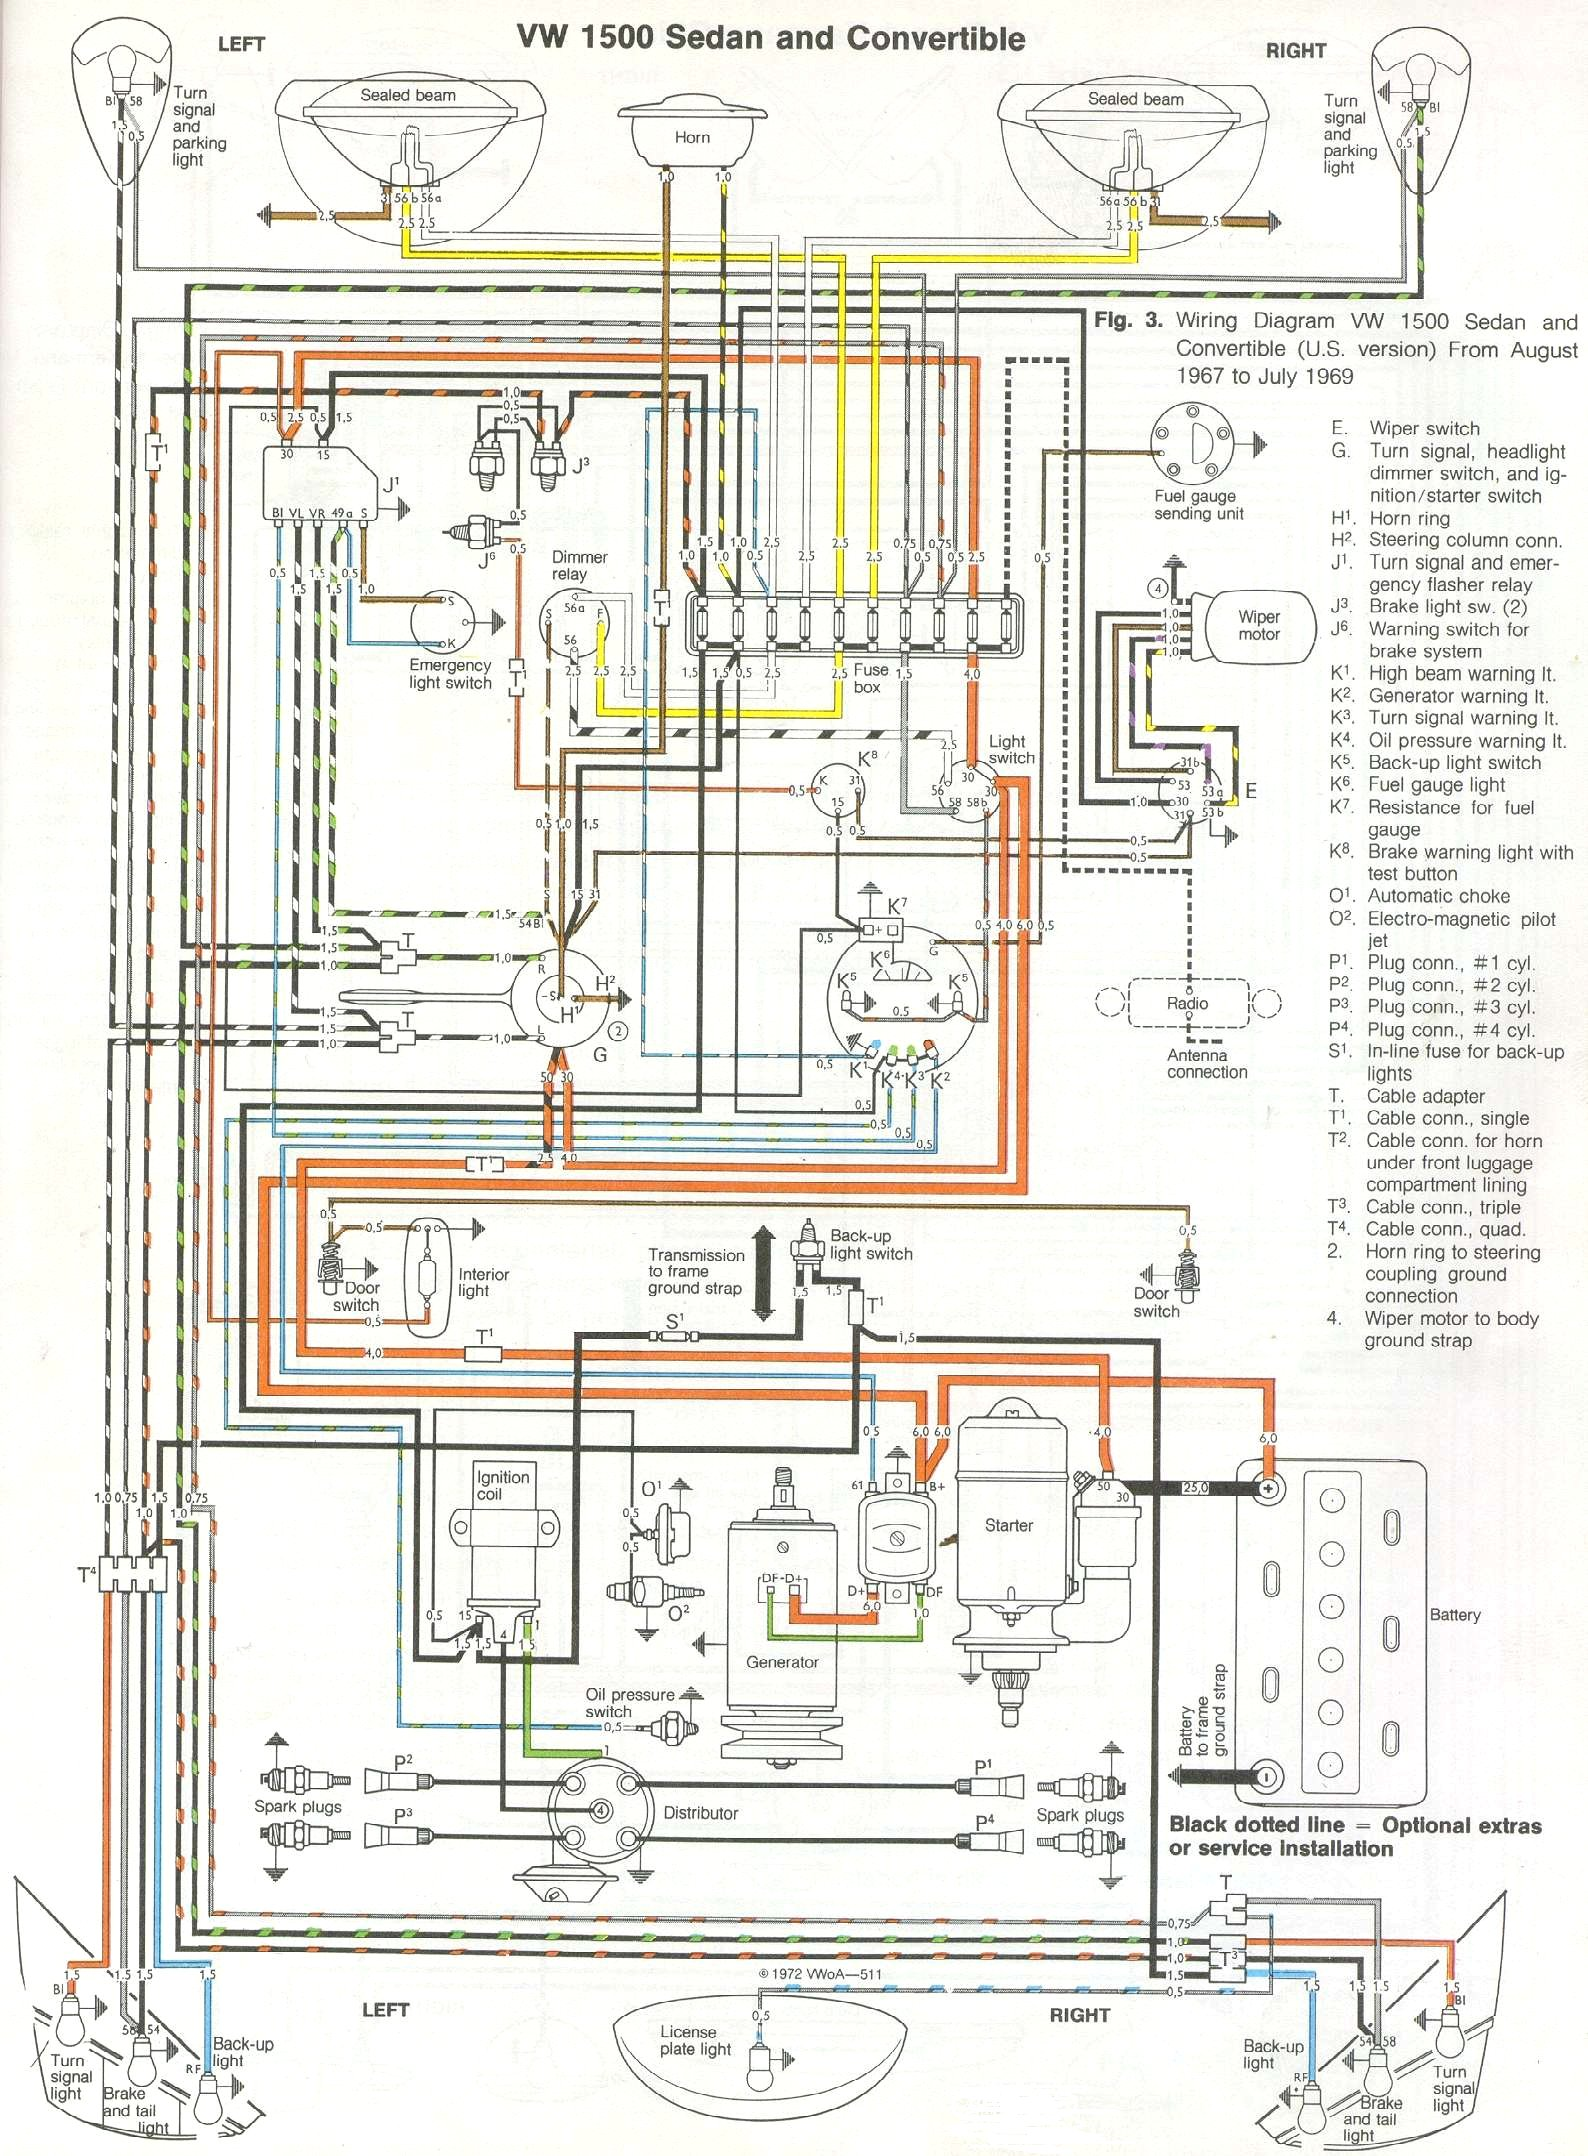 Fiat 500 Fuse Box Layout Basic Guide Wiring Diagram 1969 71 Beetle Thegoldenbug Com 2015